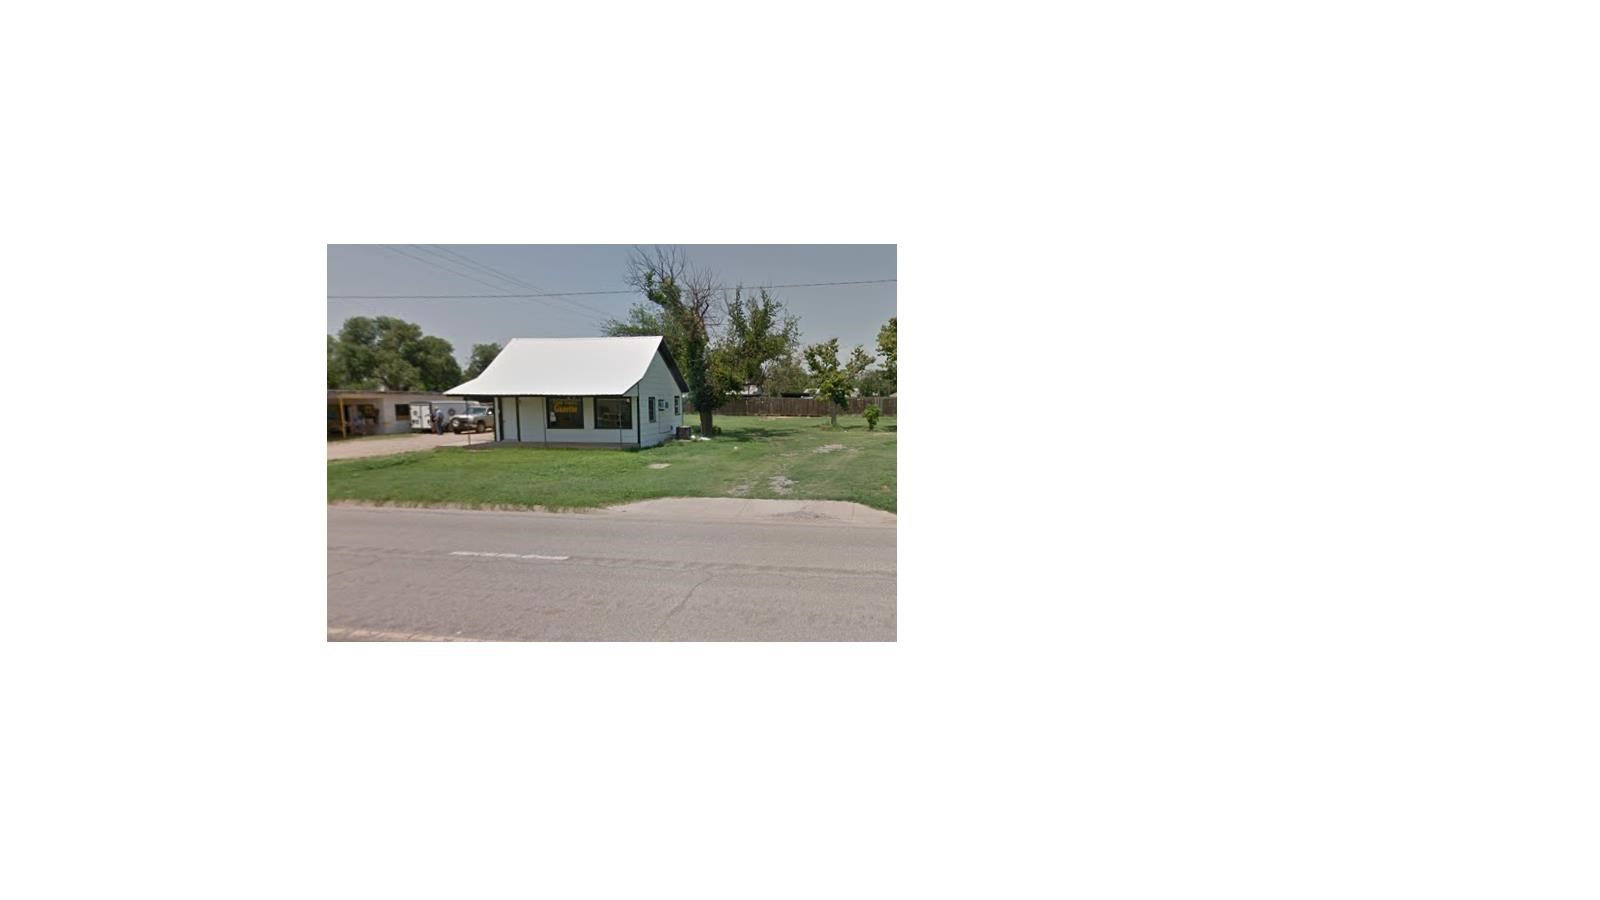 Historic Commercial Building For Sale In Ashland, Kansas